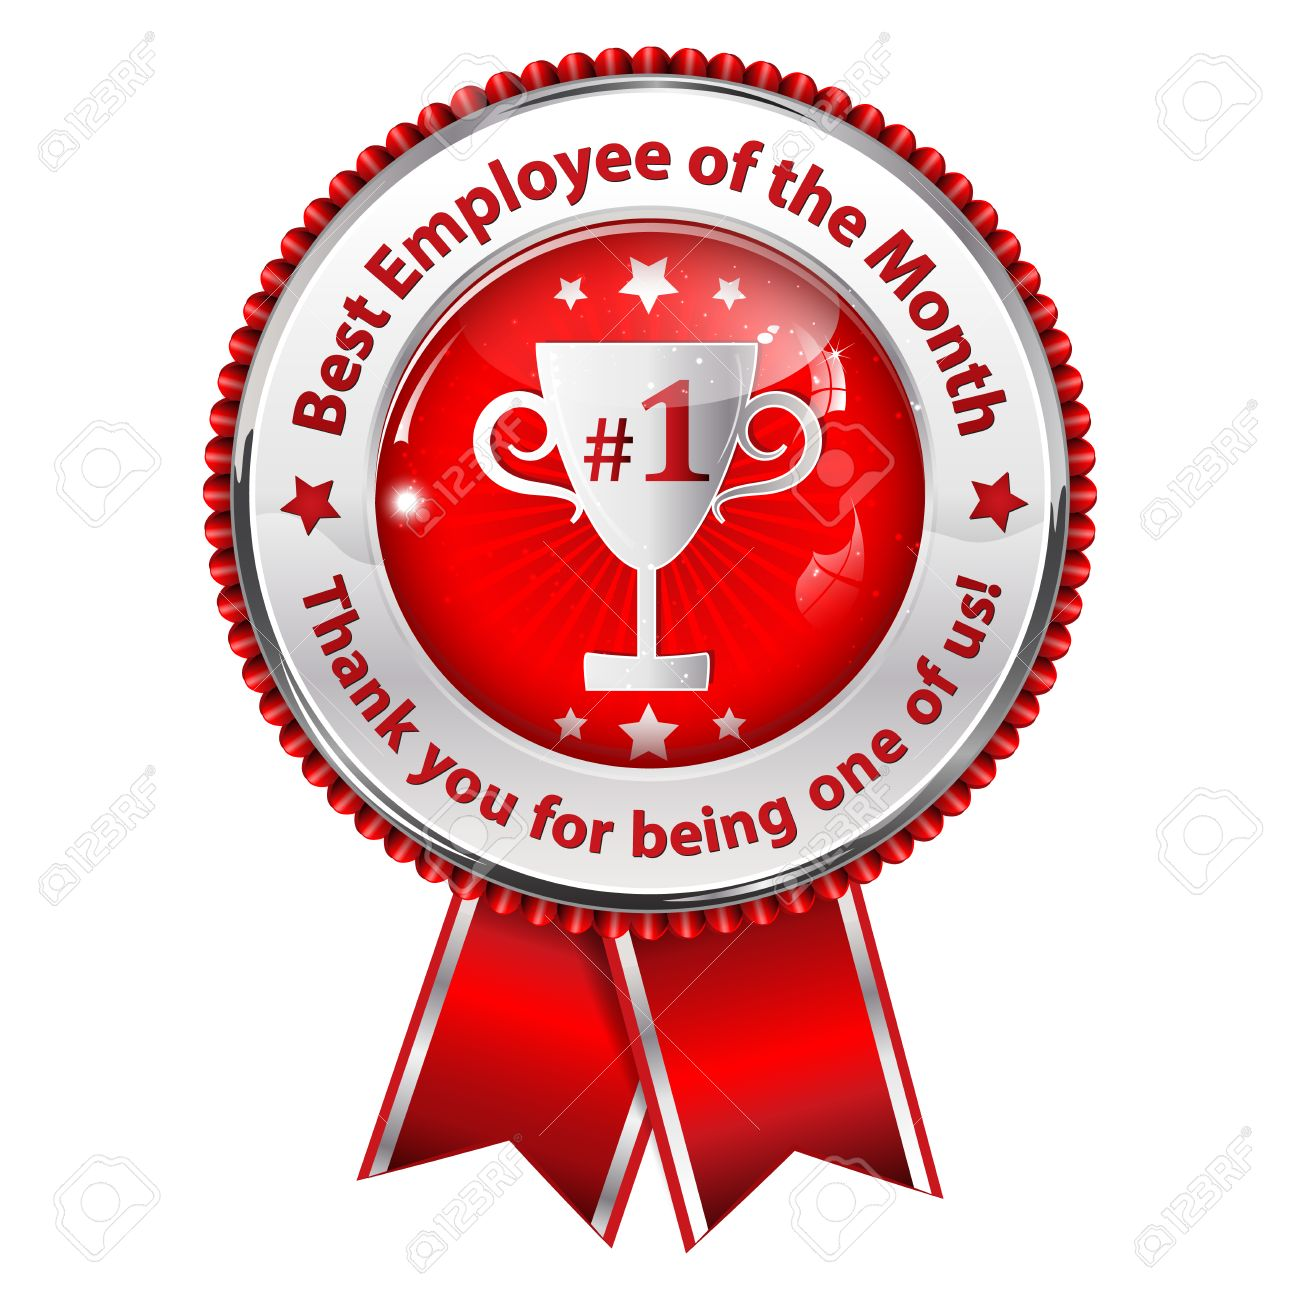 best employee of the month thank you for being one of us stock